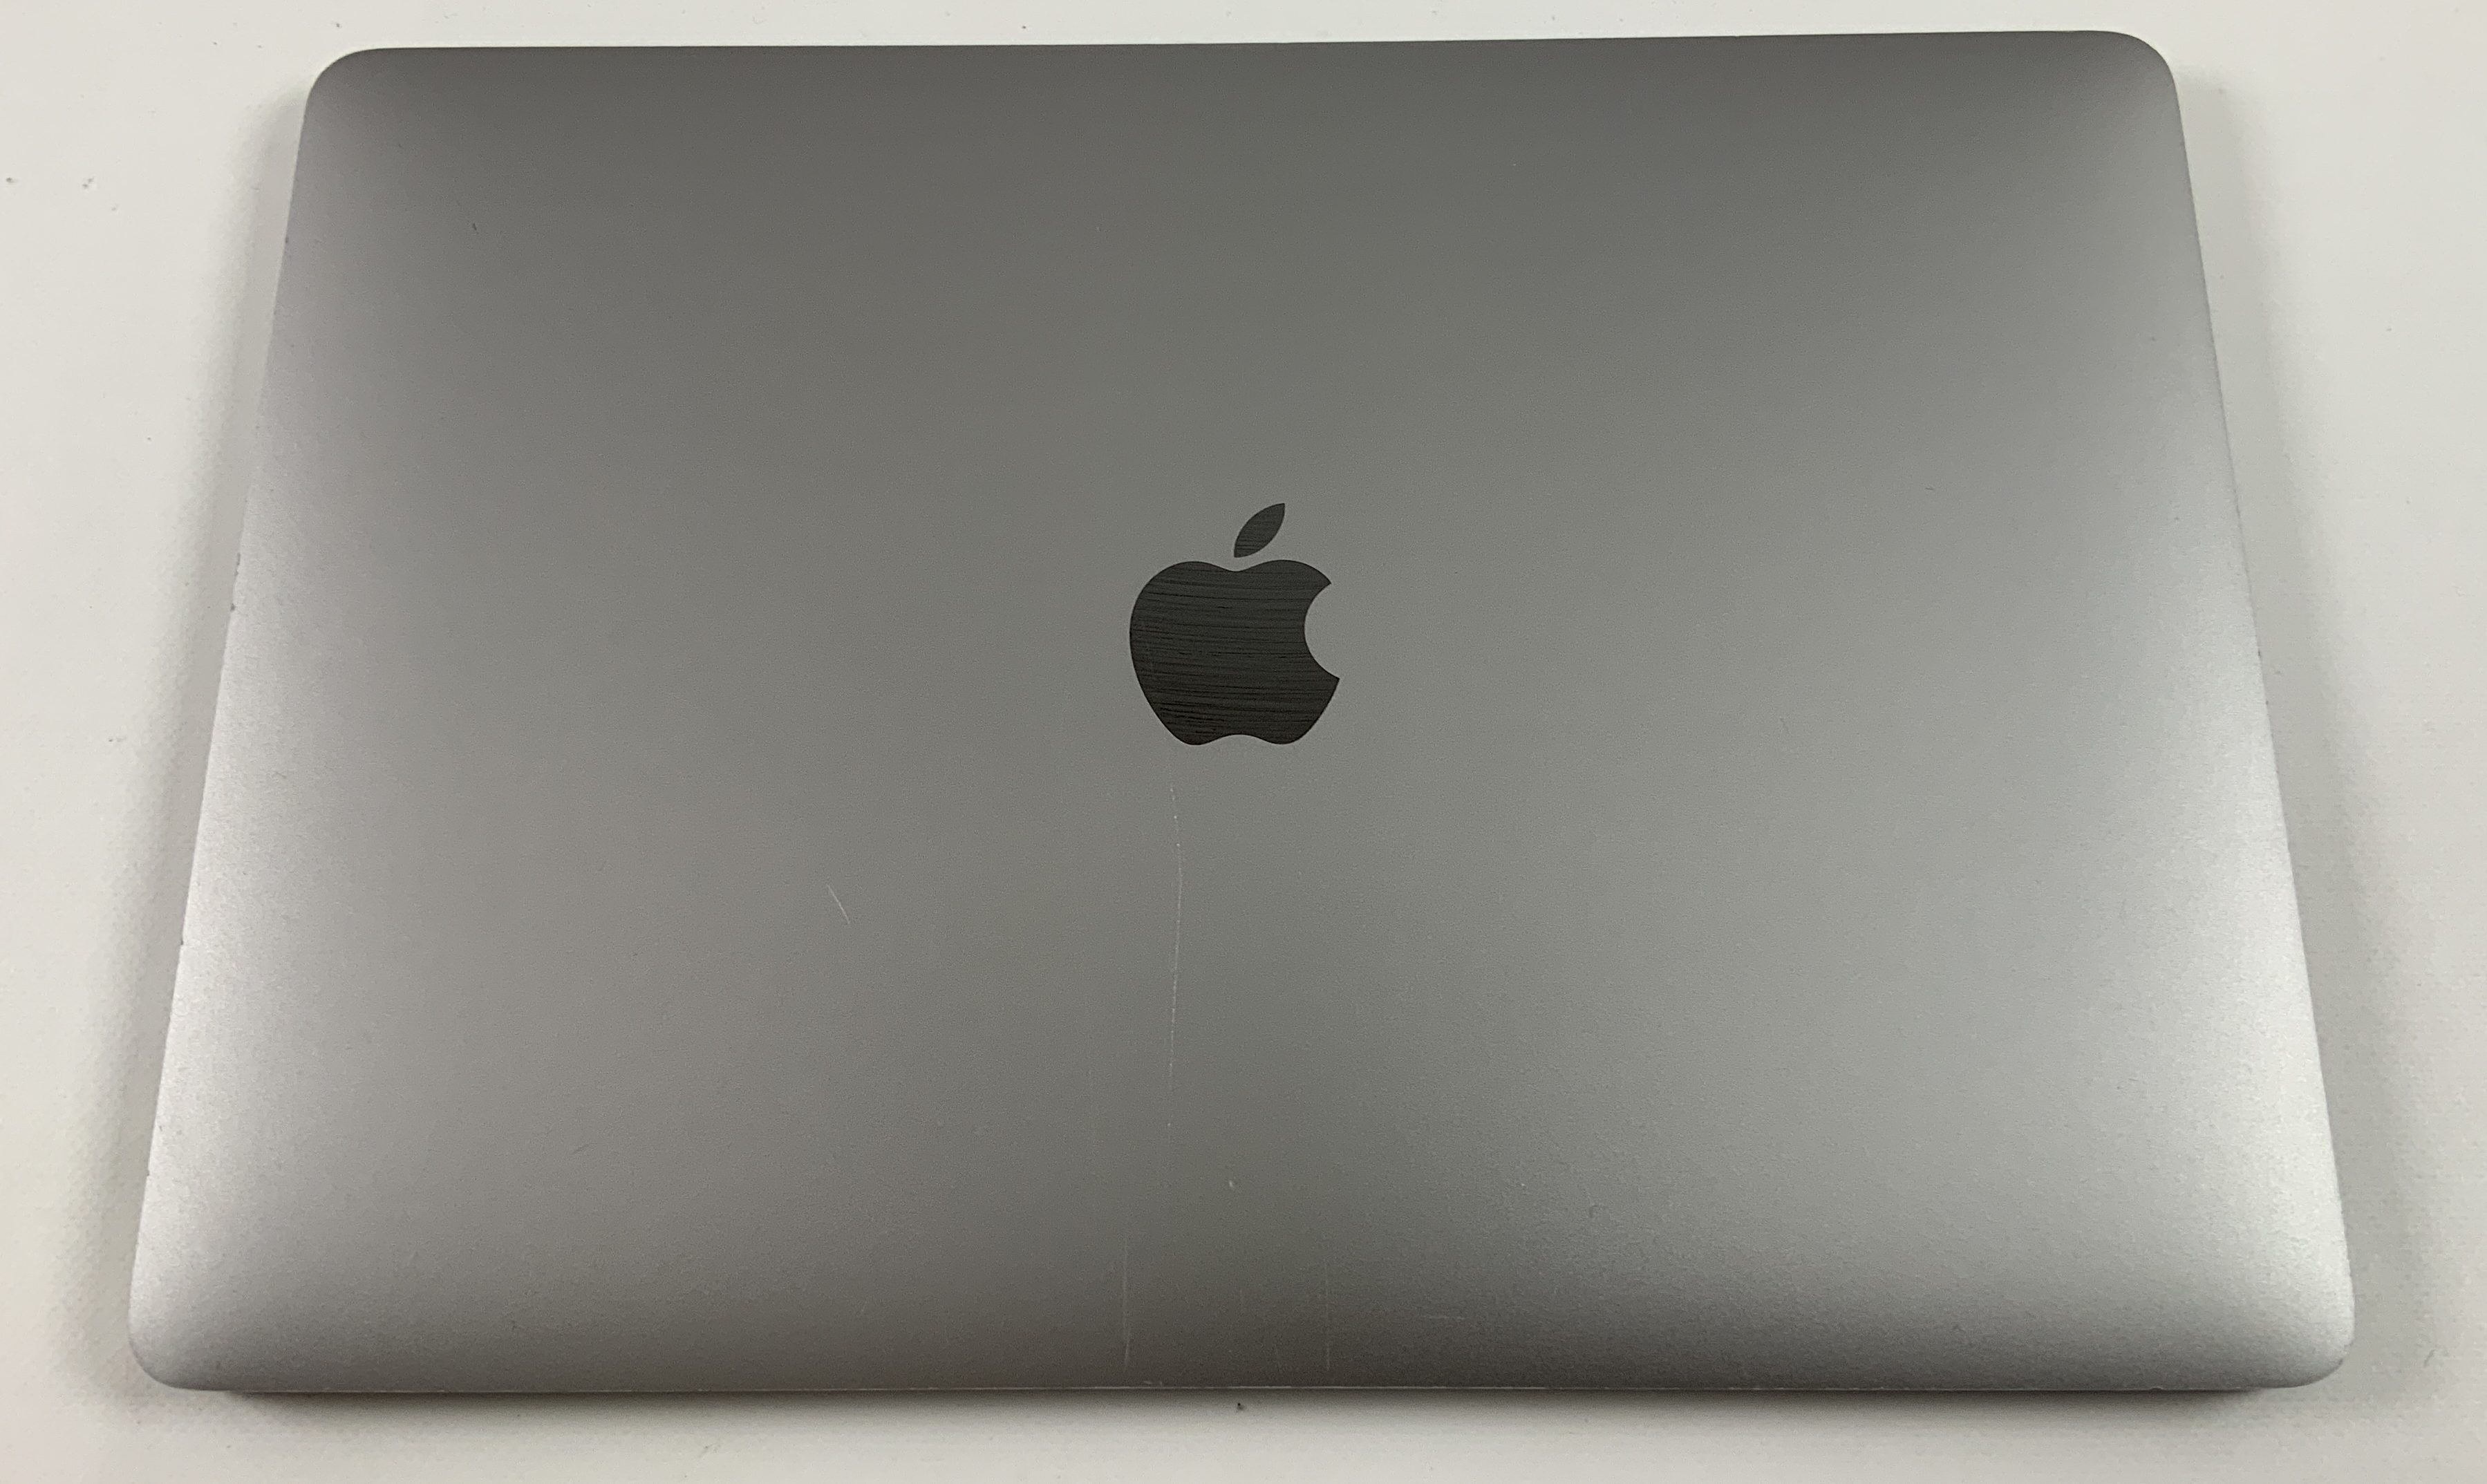 "MacBook Pro 13"" 4TBT Mid 2017 (Intel Core i5 3.1 GHz 8 GB RAM 256 GB SSD), Space Gray, Intel Core i5 3.1 GHz, 8 GB RAM, 256 GB SSD, Kuva 2"